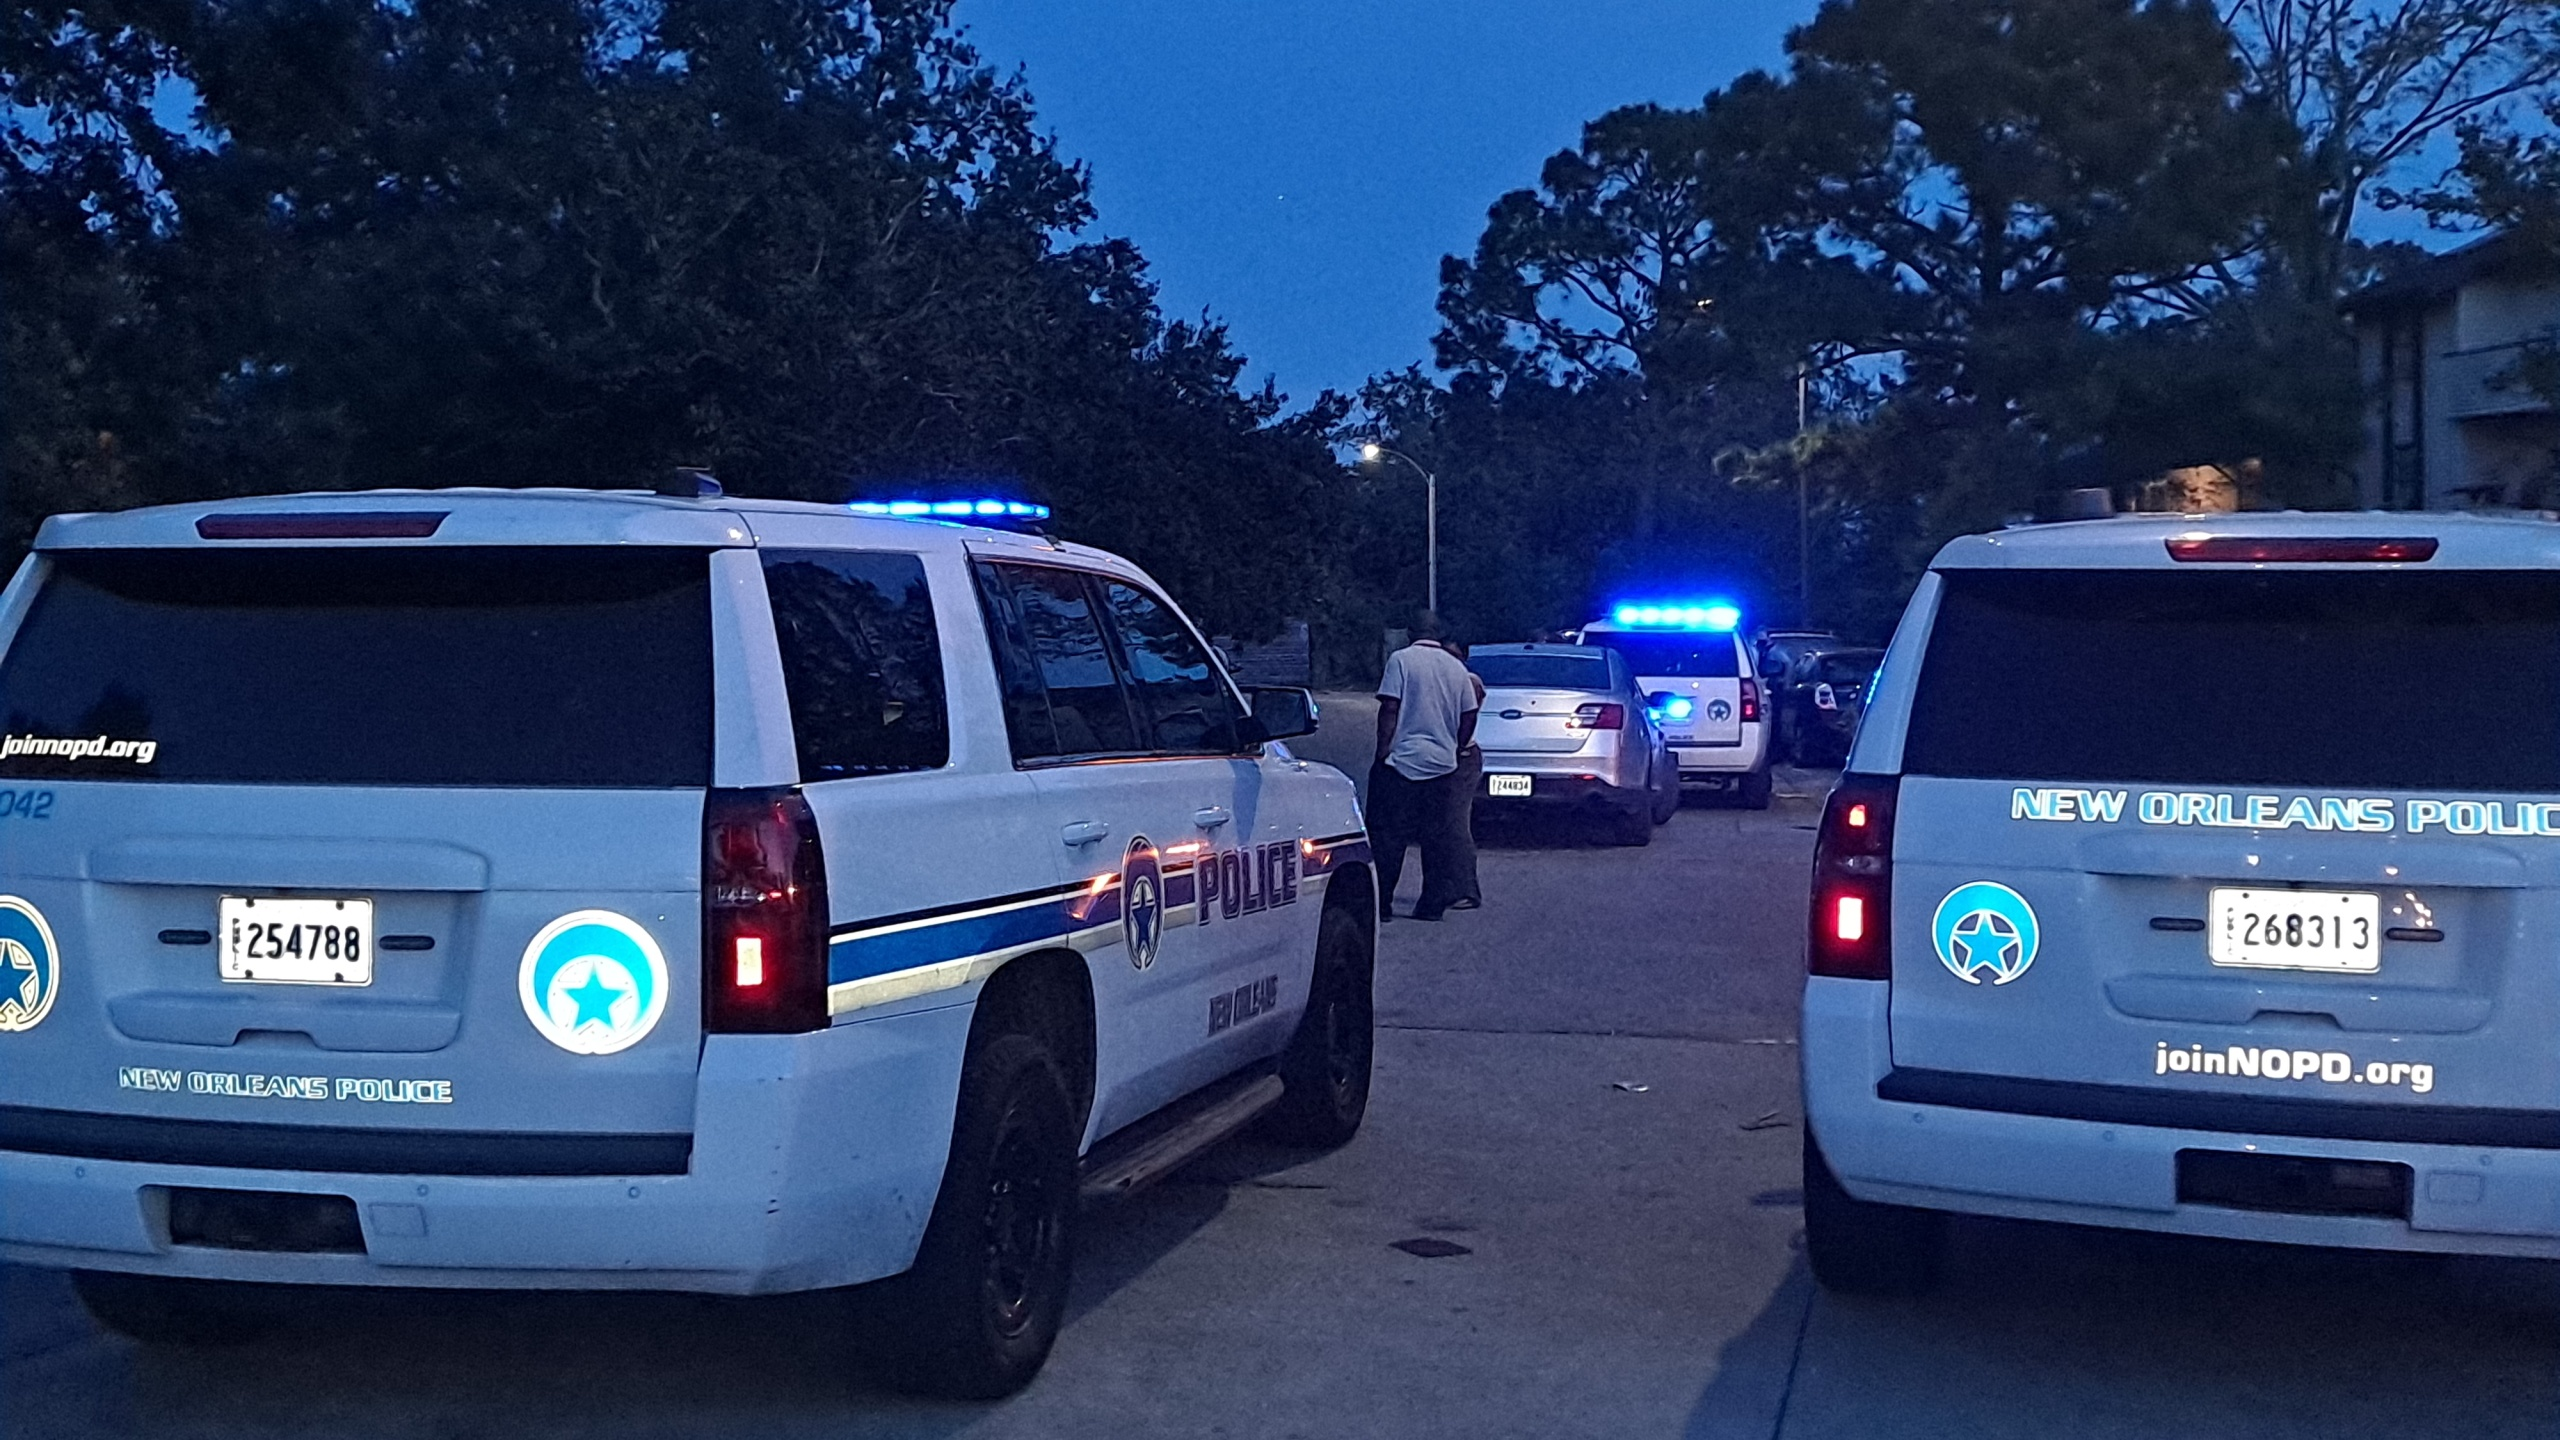 https://wgno.com/news/crime/man-killed-in-algiers-shooting-nopd-says